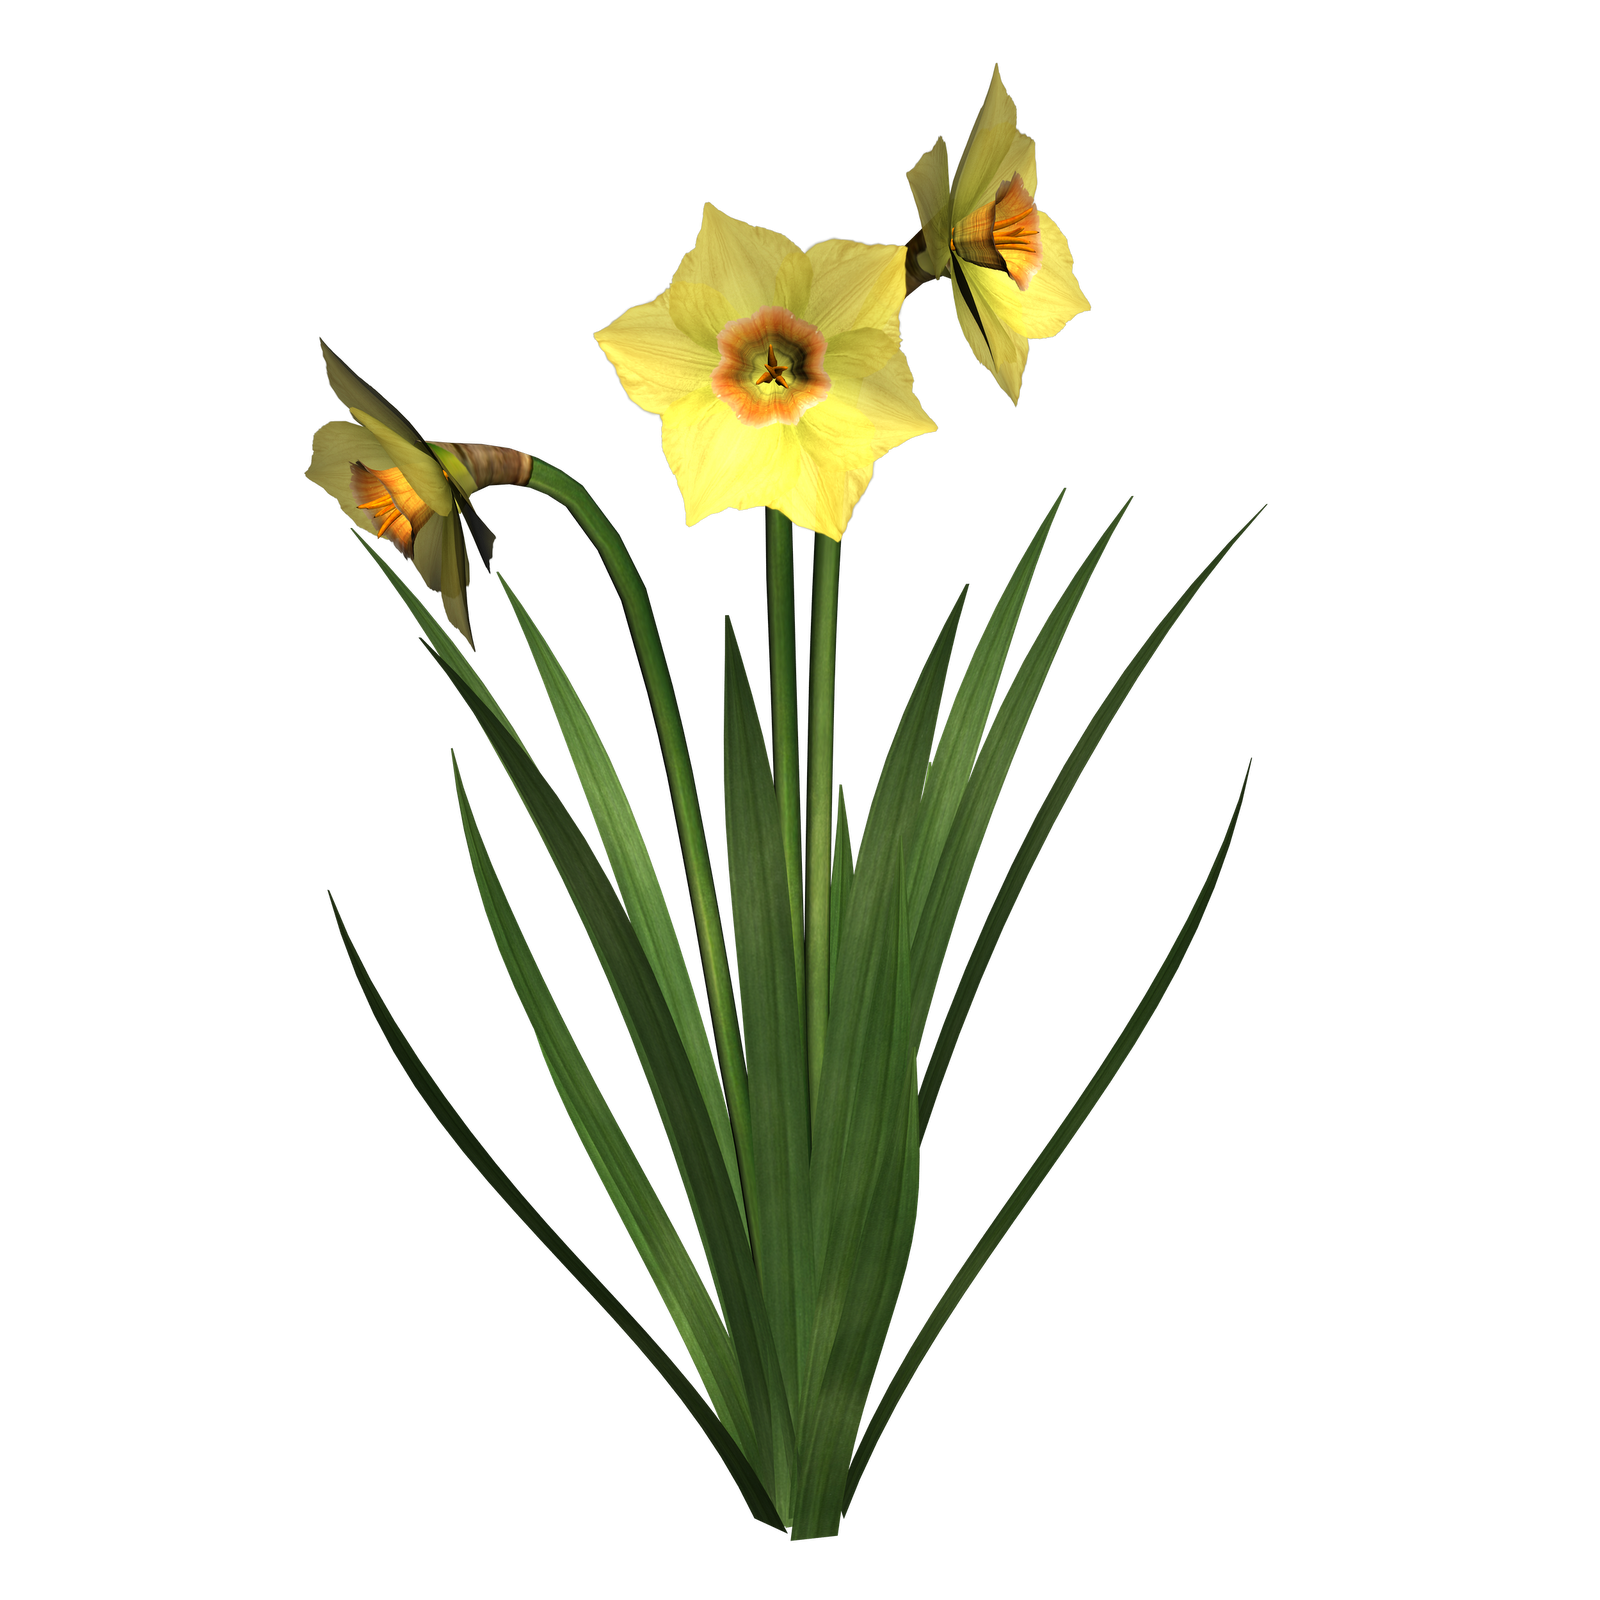 Free daffodils pictures download. Daffodil clipart lily transparent